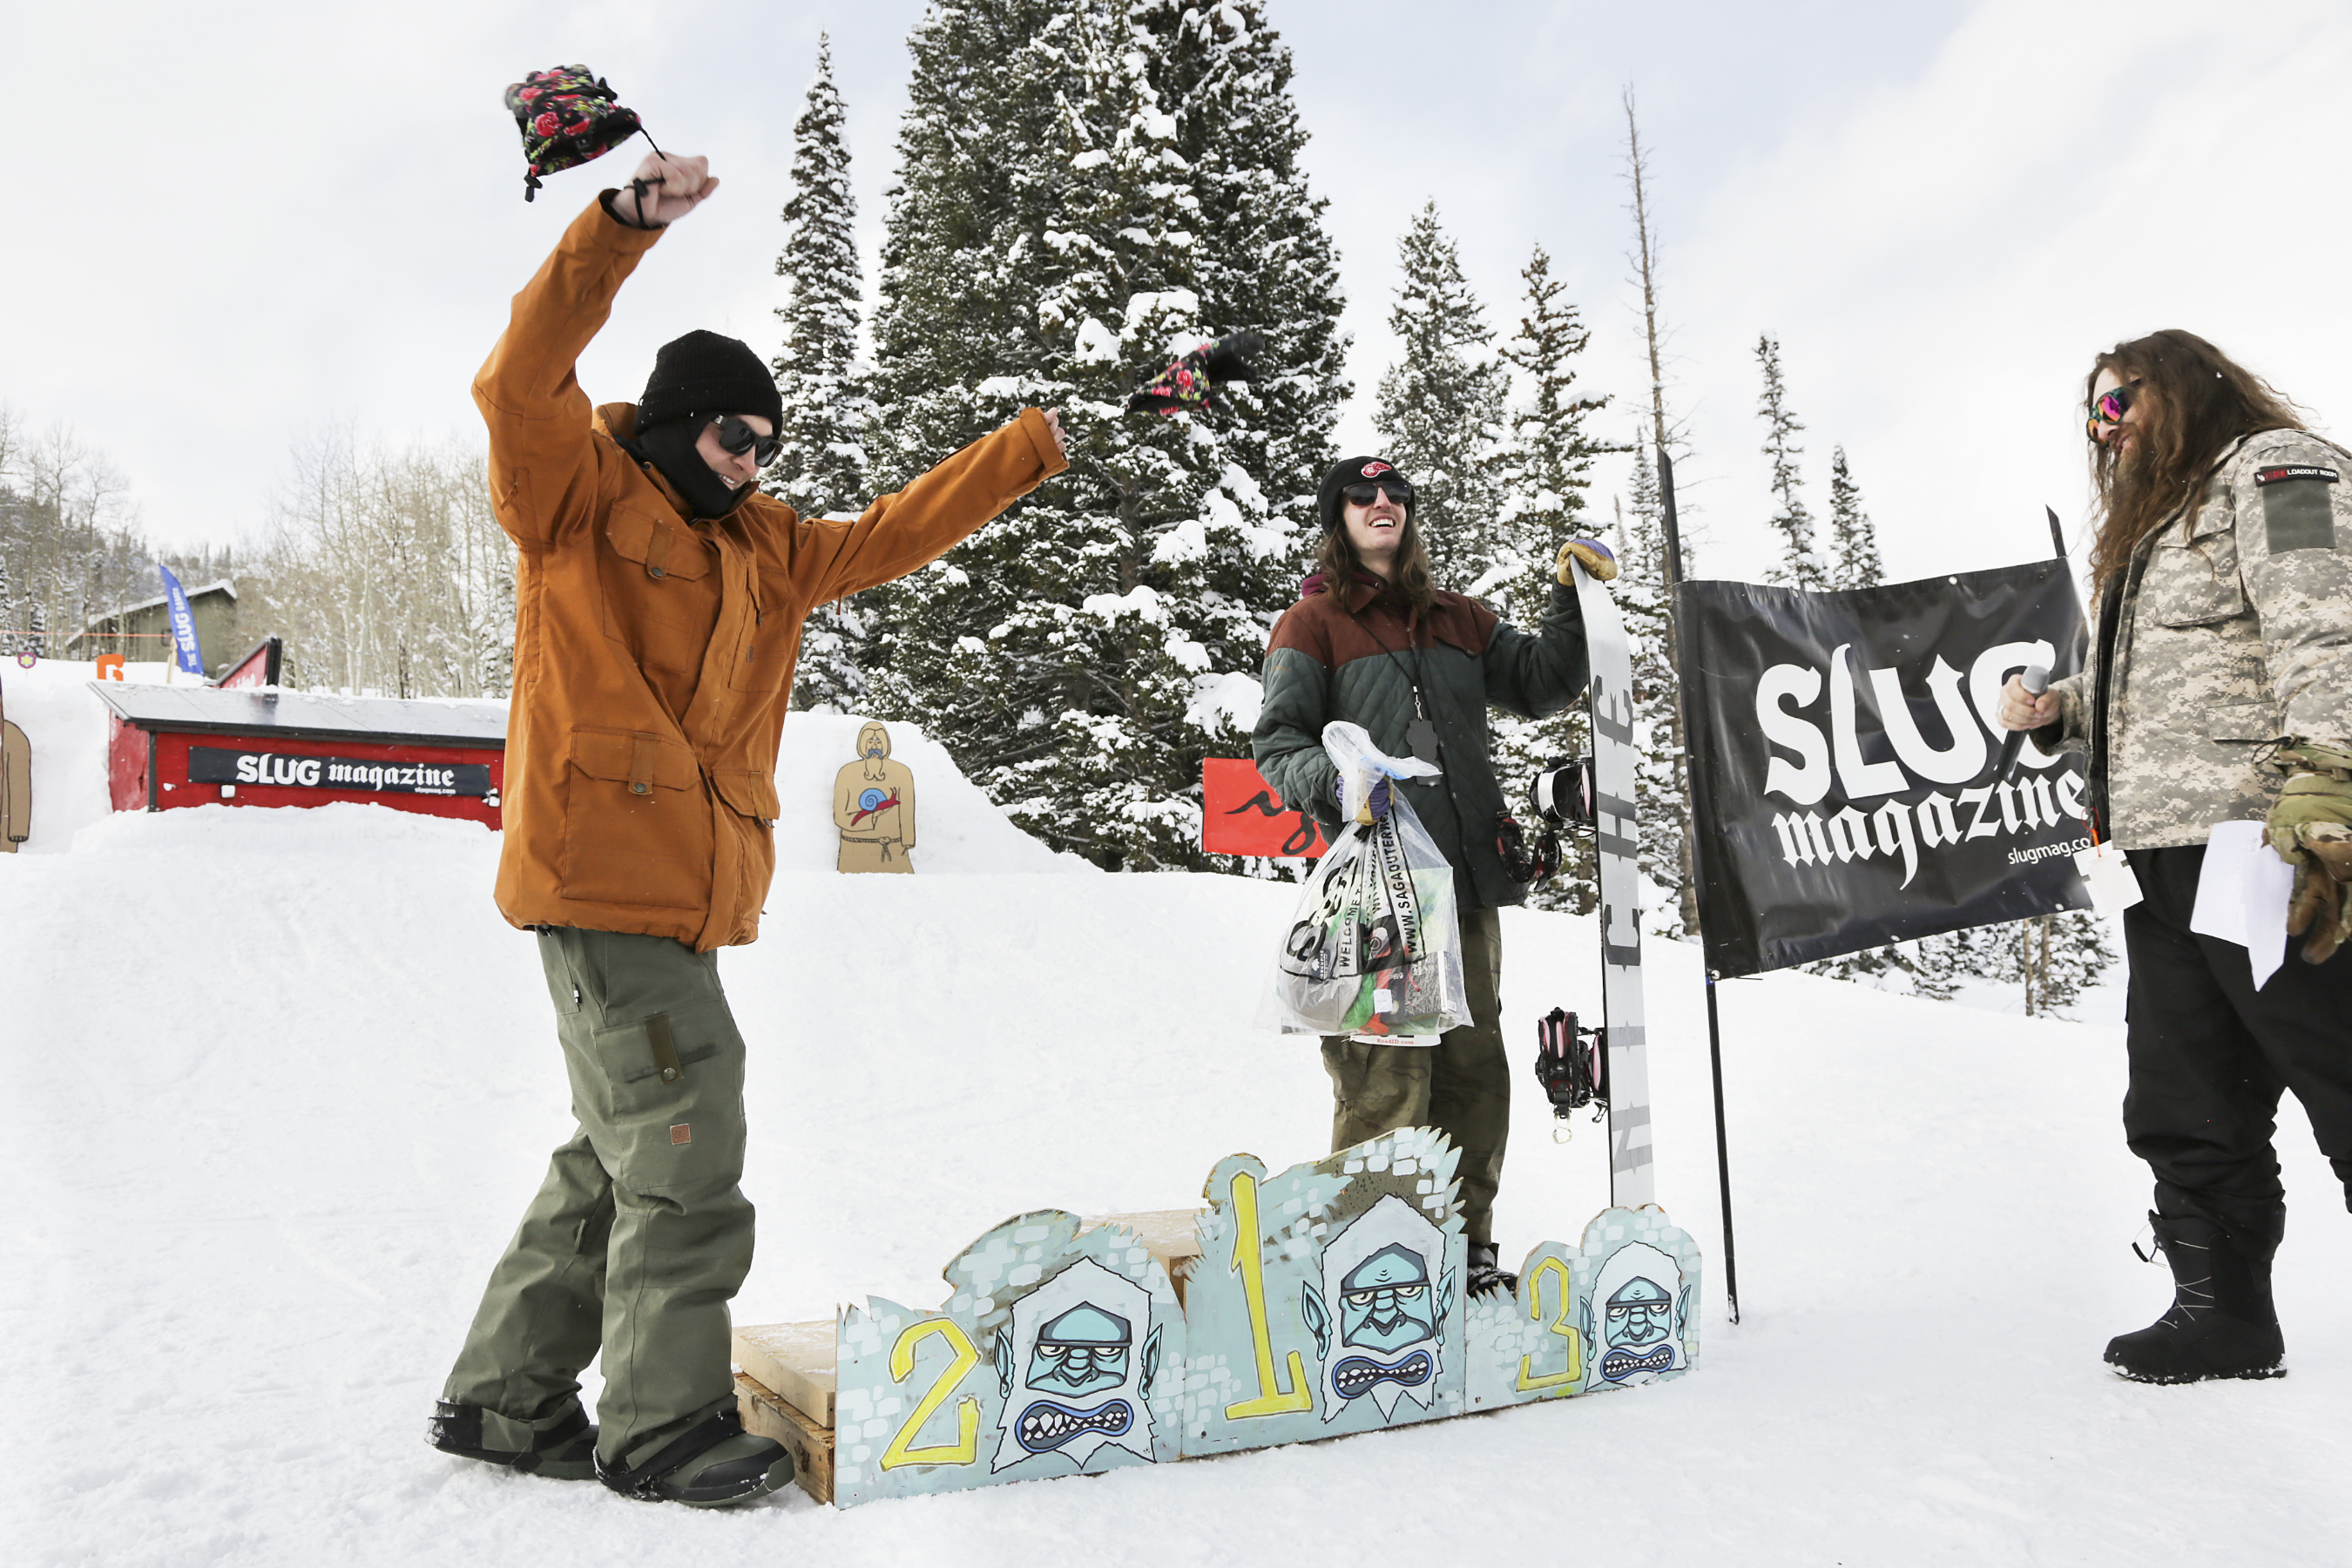 2nd place winner Paxon Alexander of the mens open snow proudly walks up to the podium to join 3rd place winner Evan Thomas.